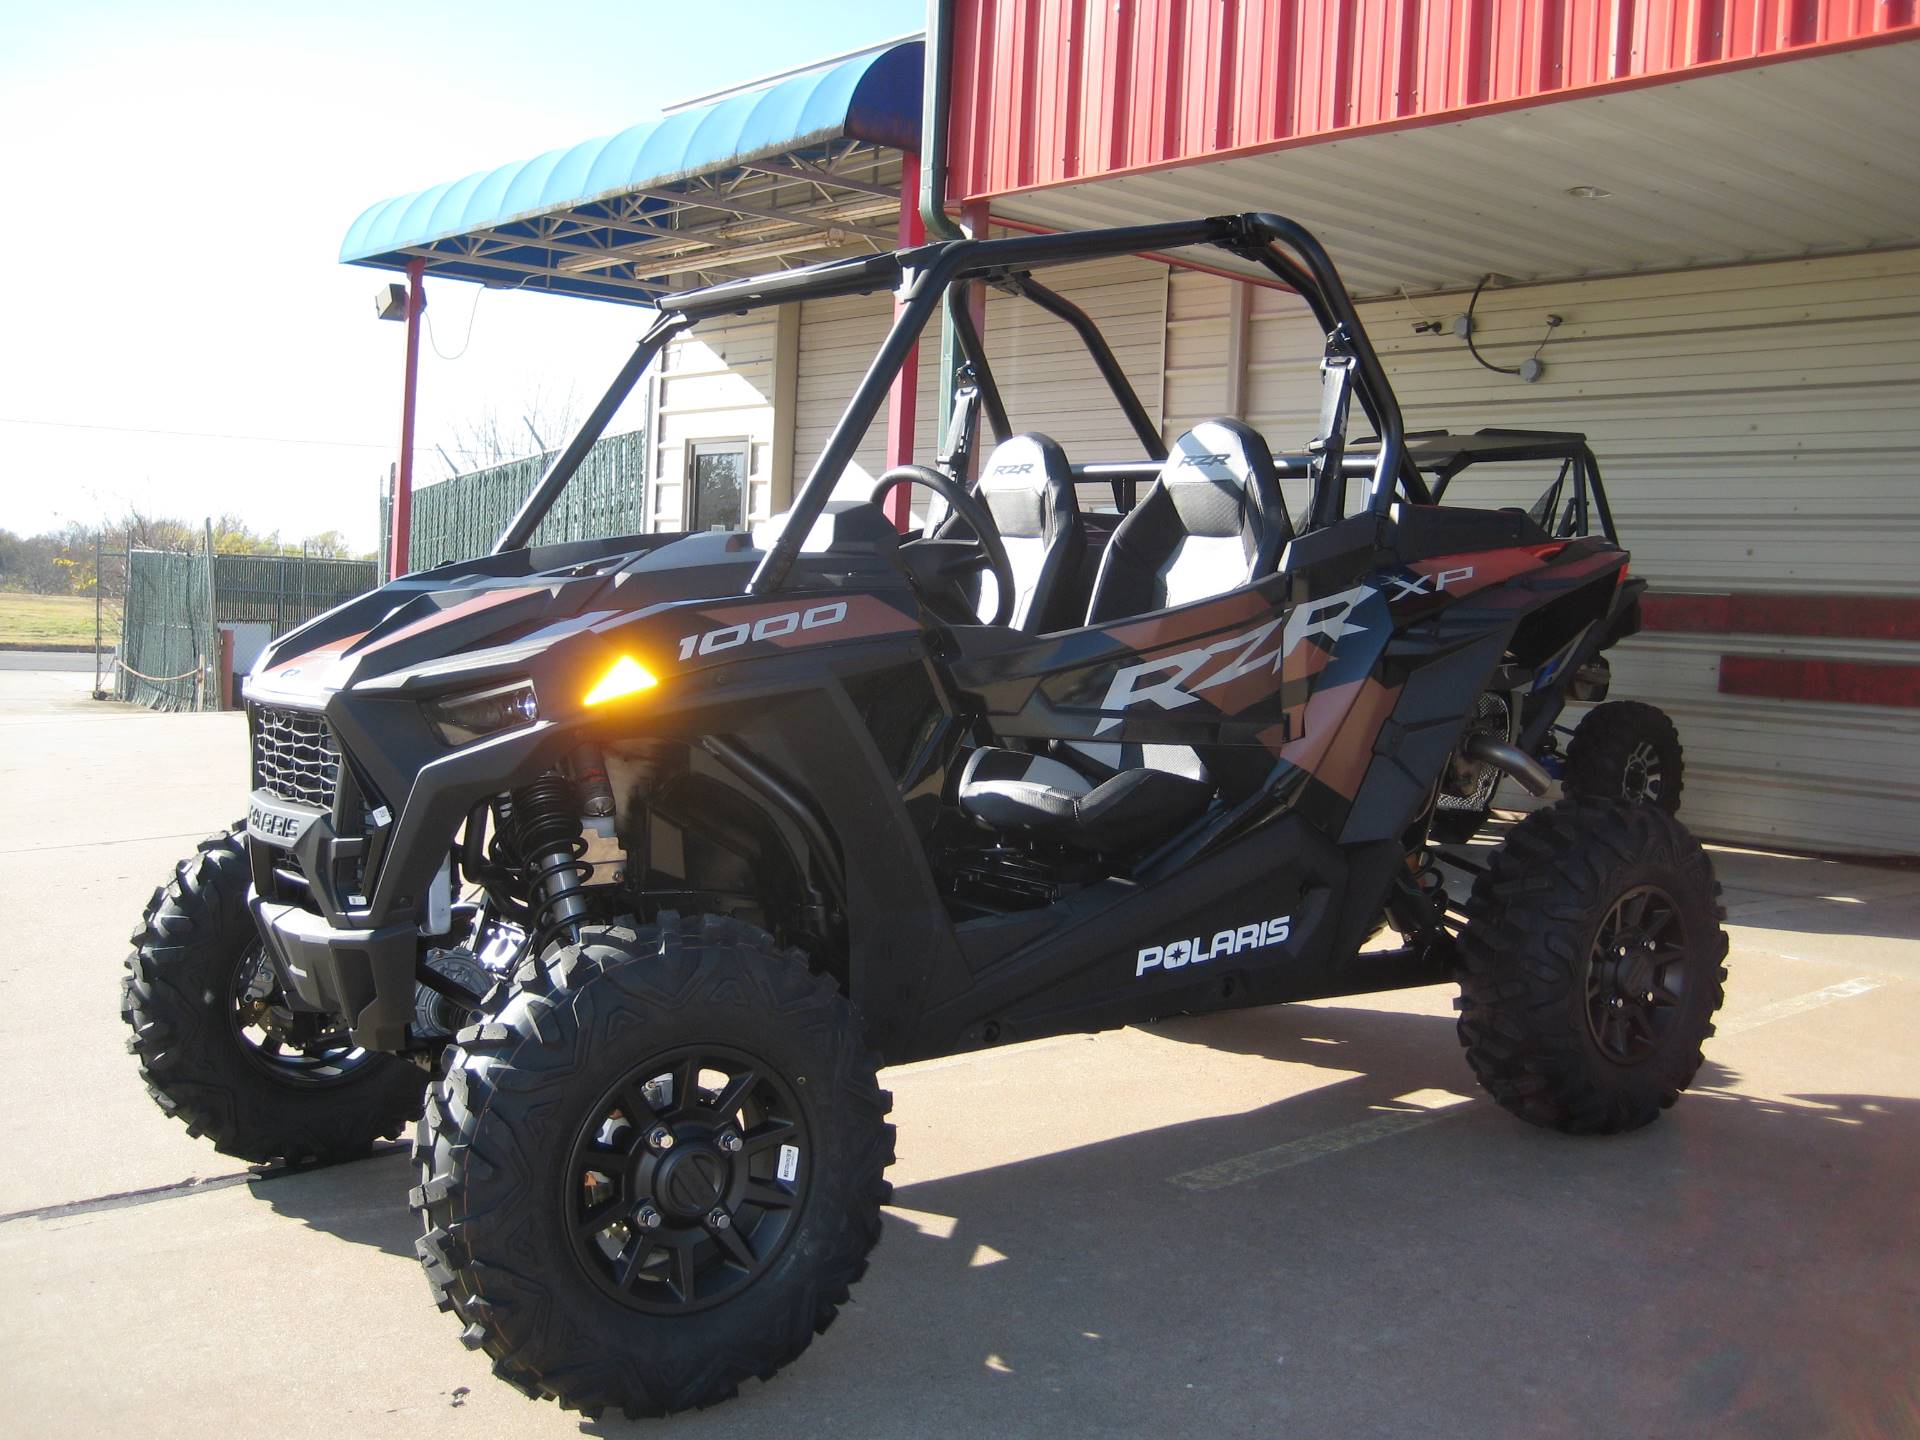 2021 Polaris RZR XP 1000 Sport in Broken Arrow, Oklahoma - Photo 2